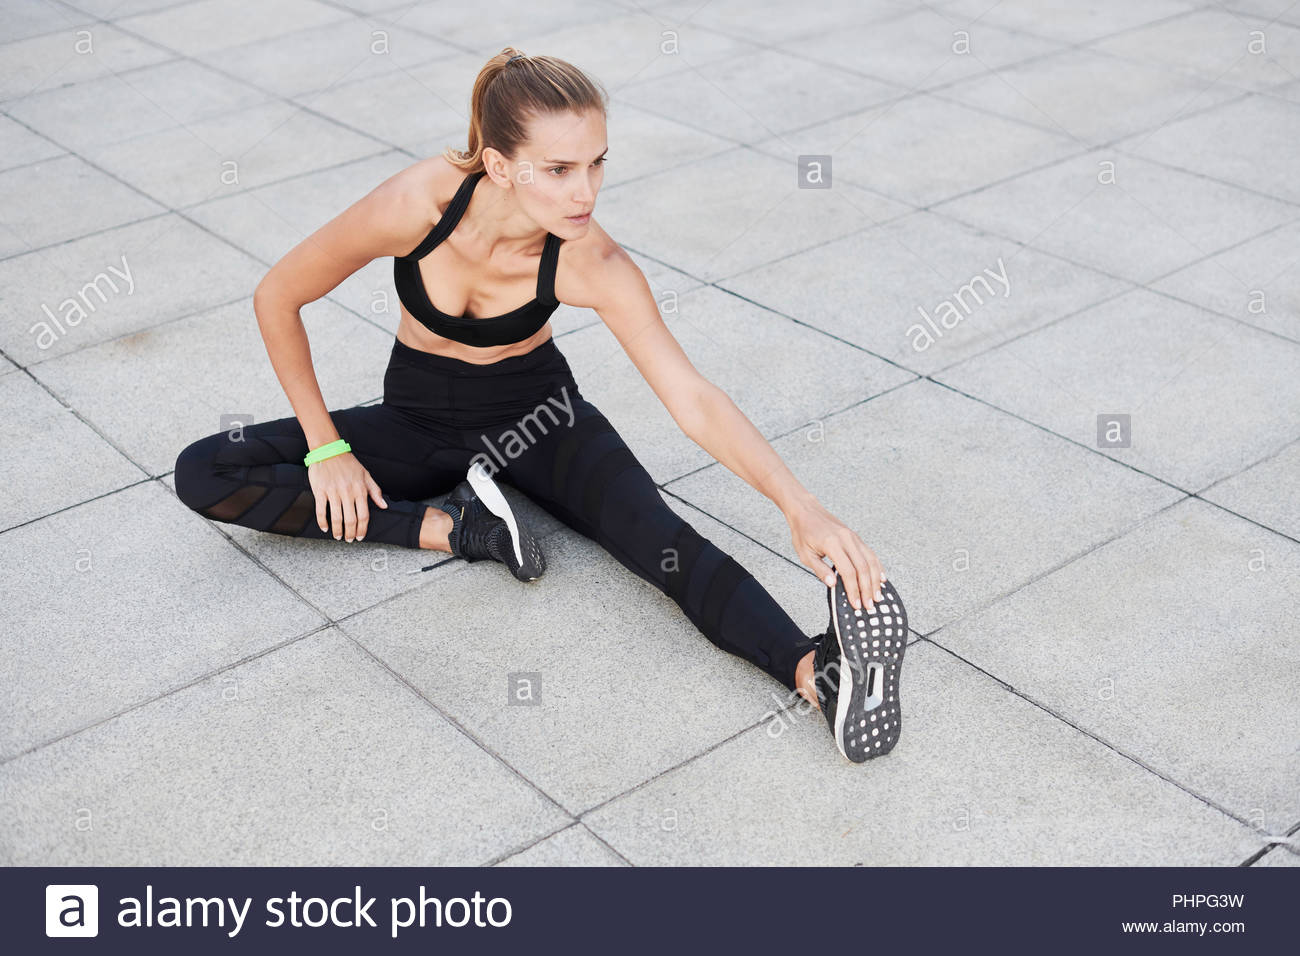 Woman wearing black sportswear stretching on footpath - Stock Image